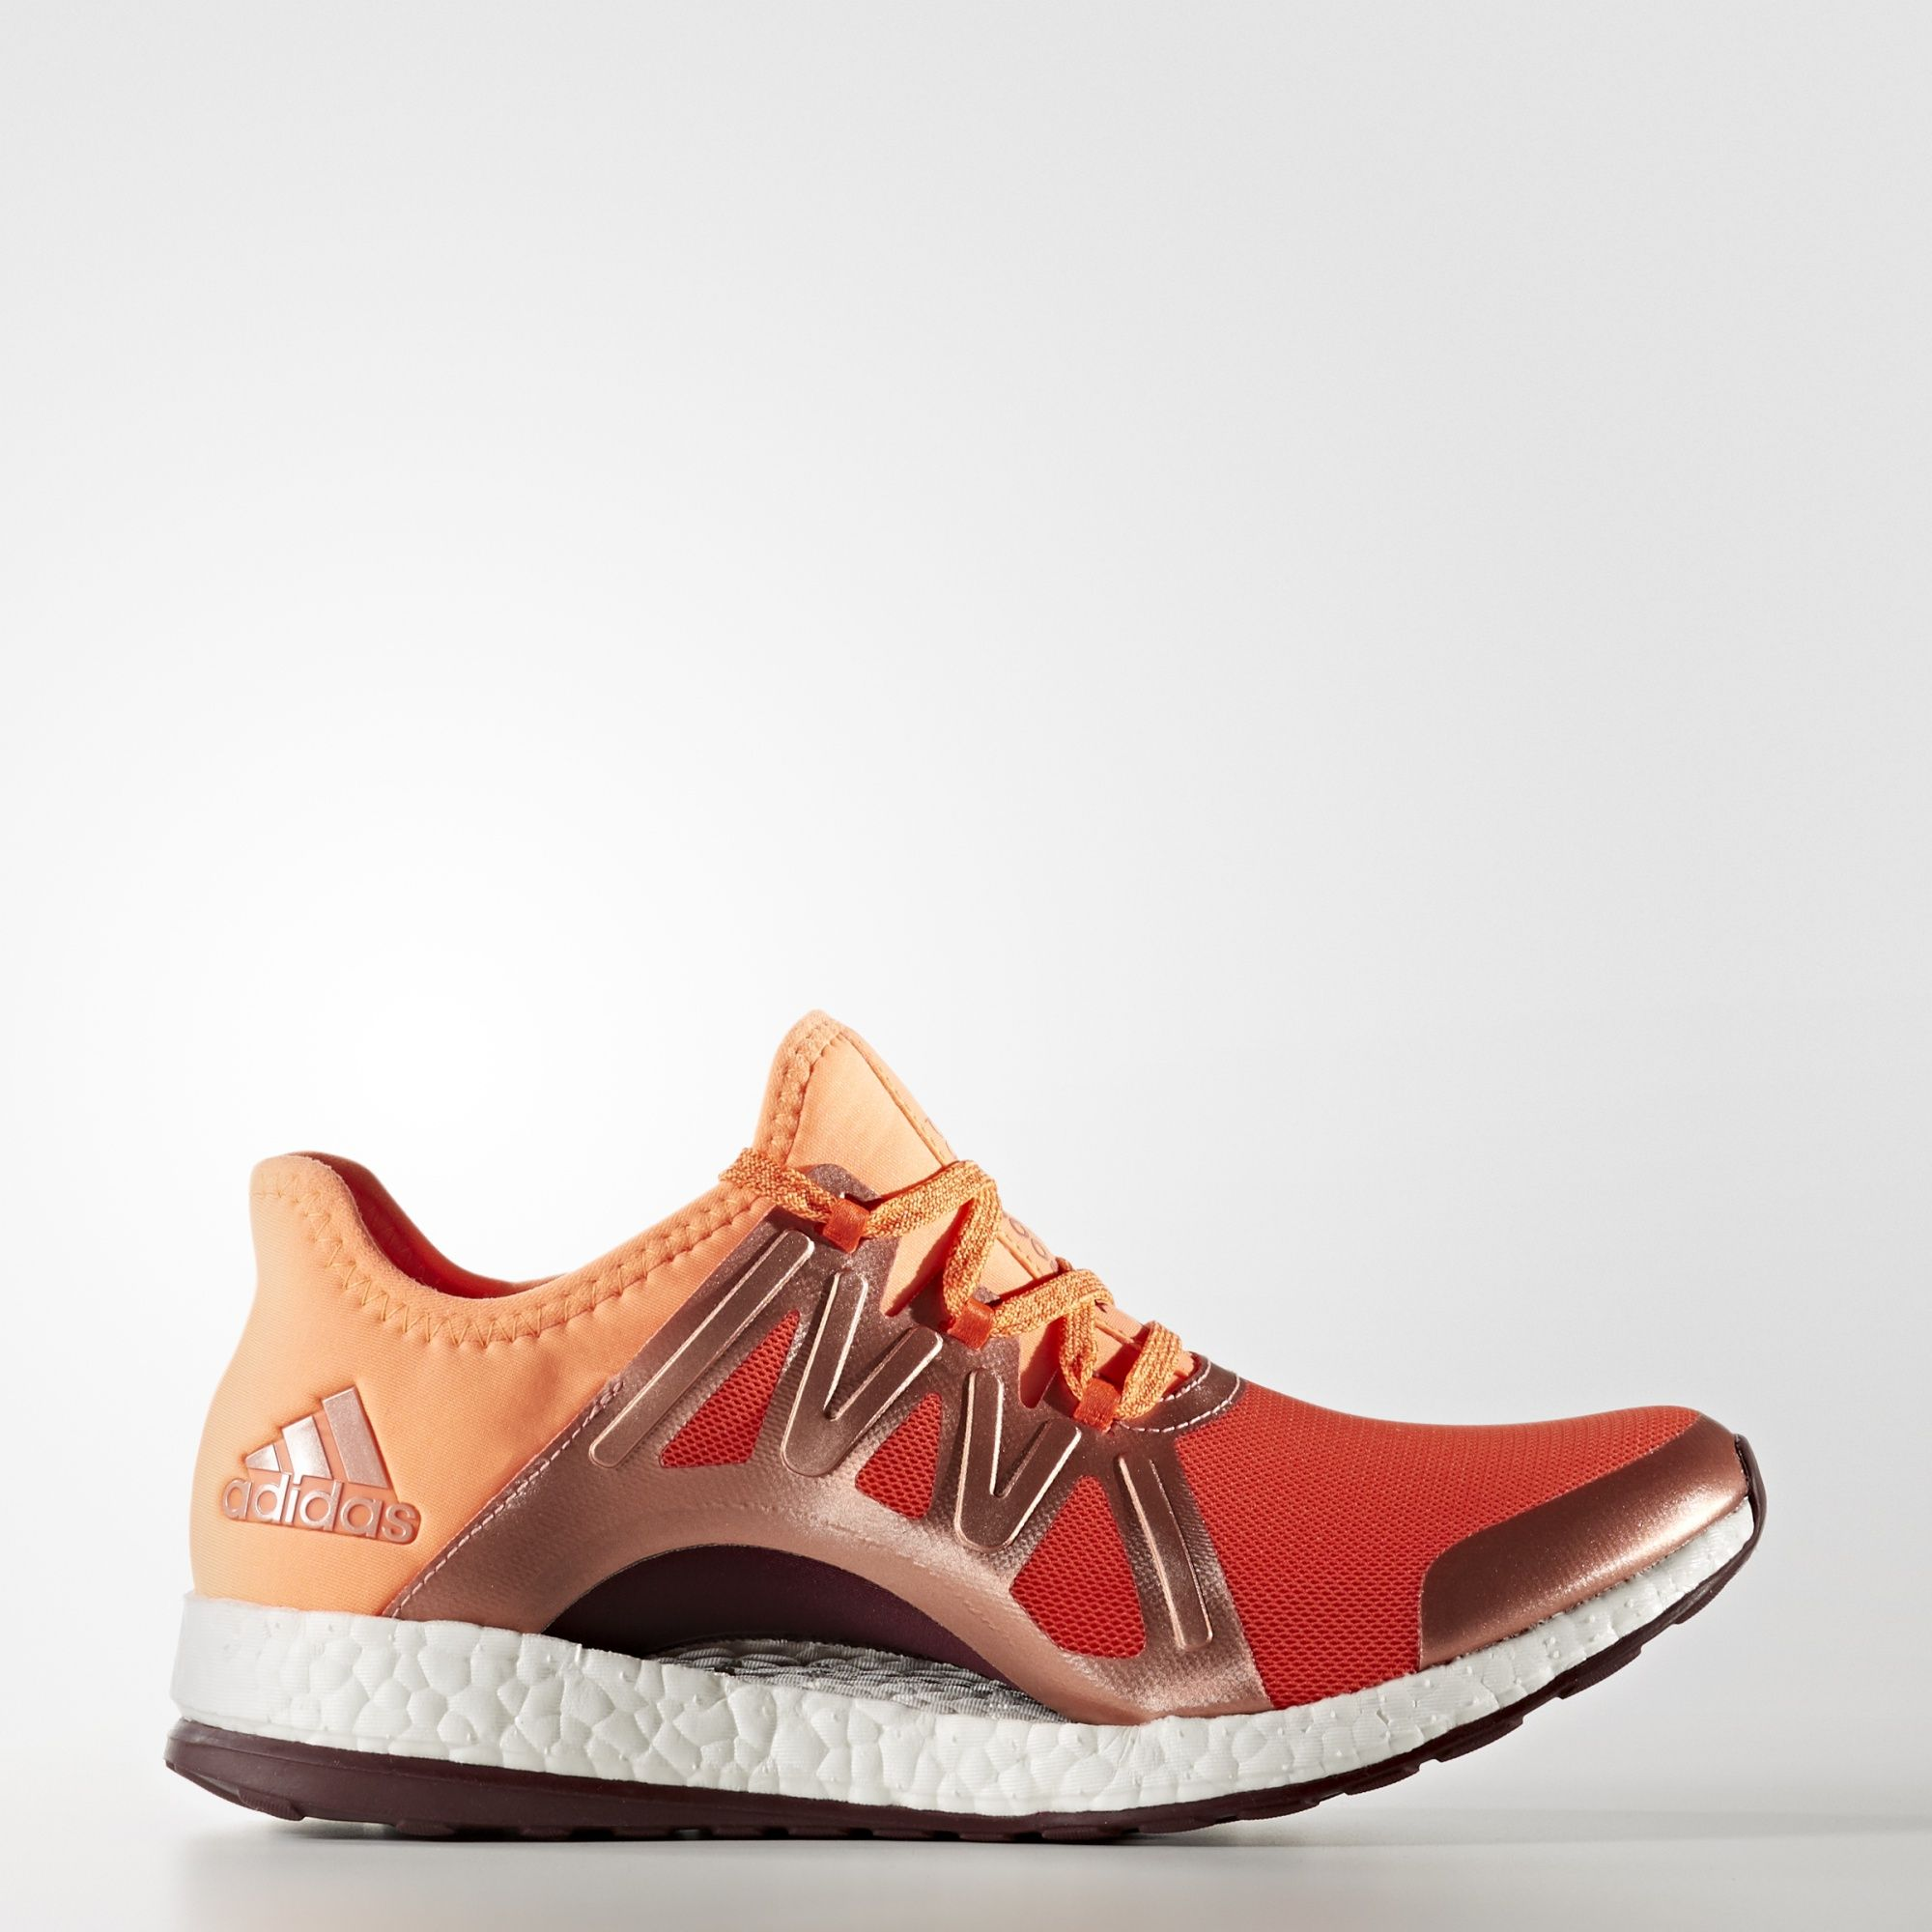 new concept 0b139 07c75 These women s running shoes combine style and performance for a winning  combination. Designed to respond to the ways a woman s foot moves as she  runs, ...